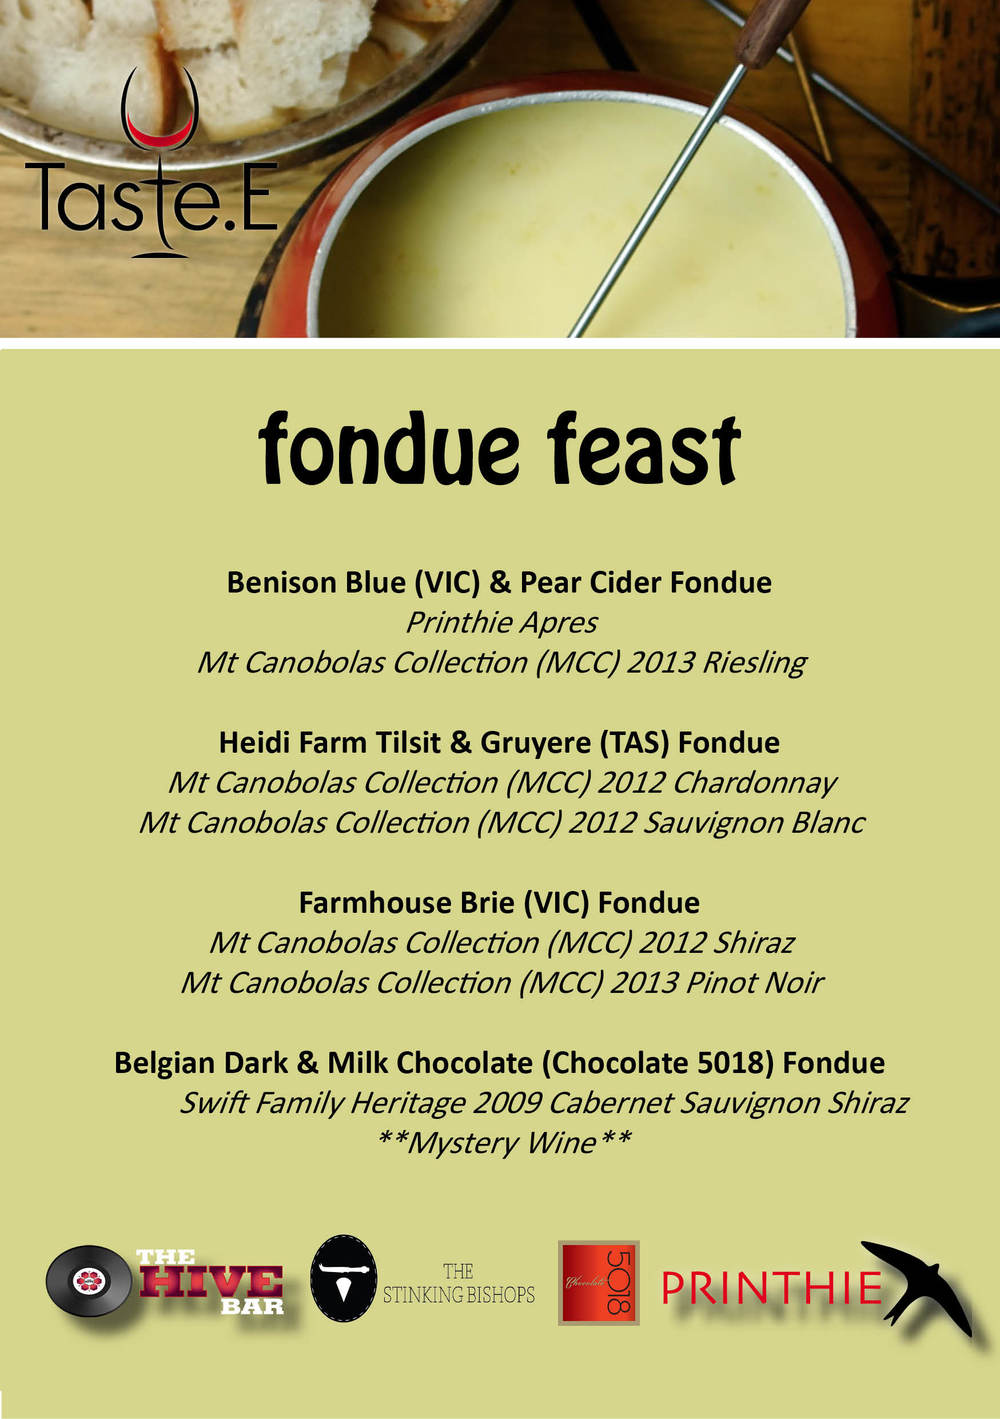 FondueFeast_Menu